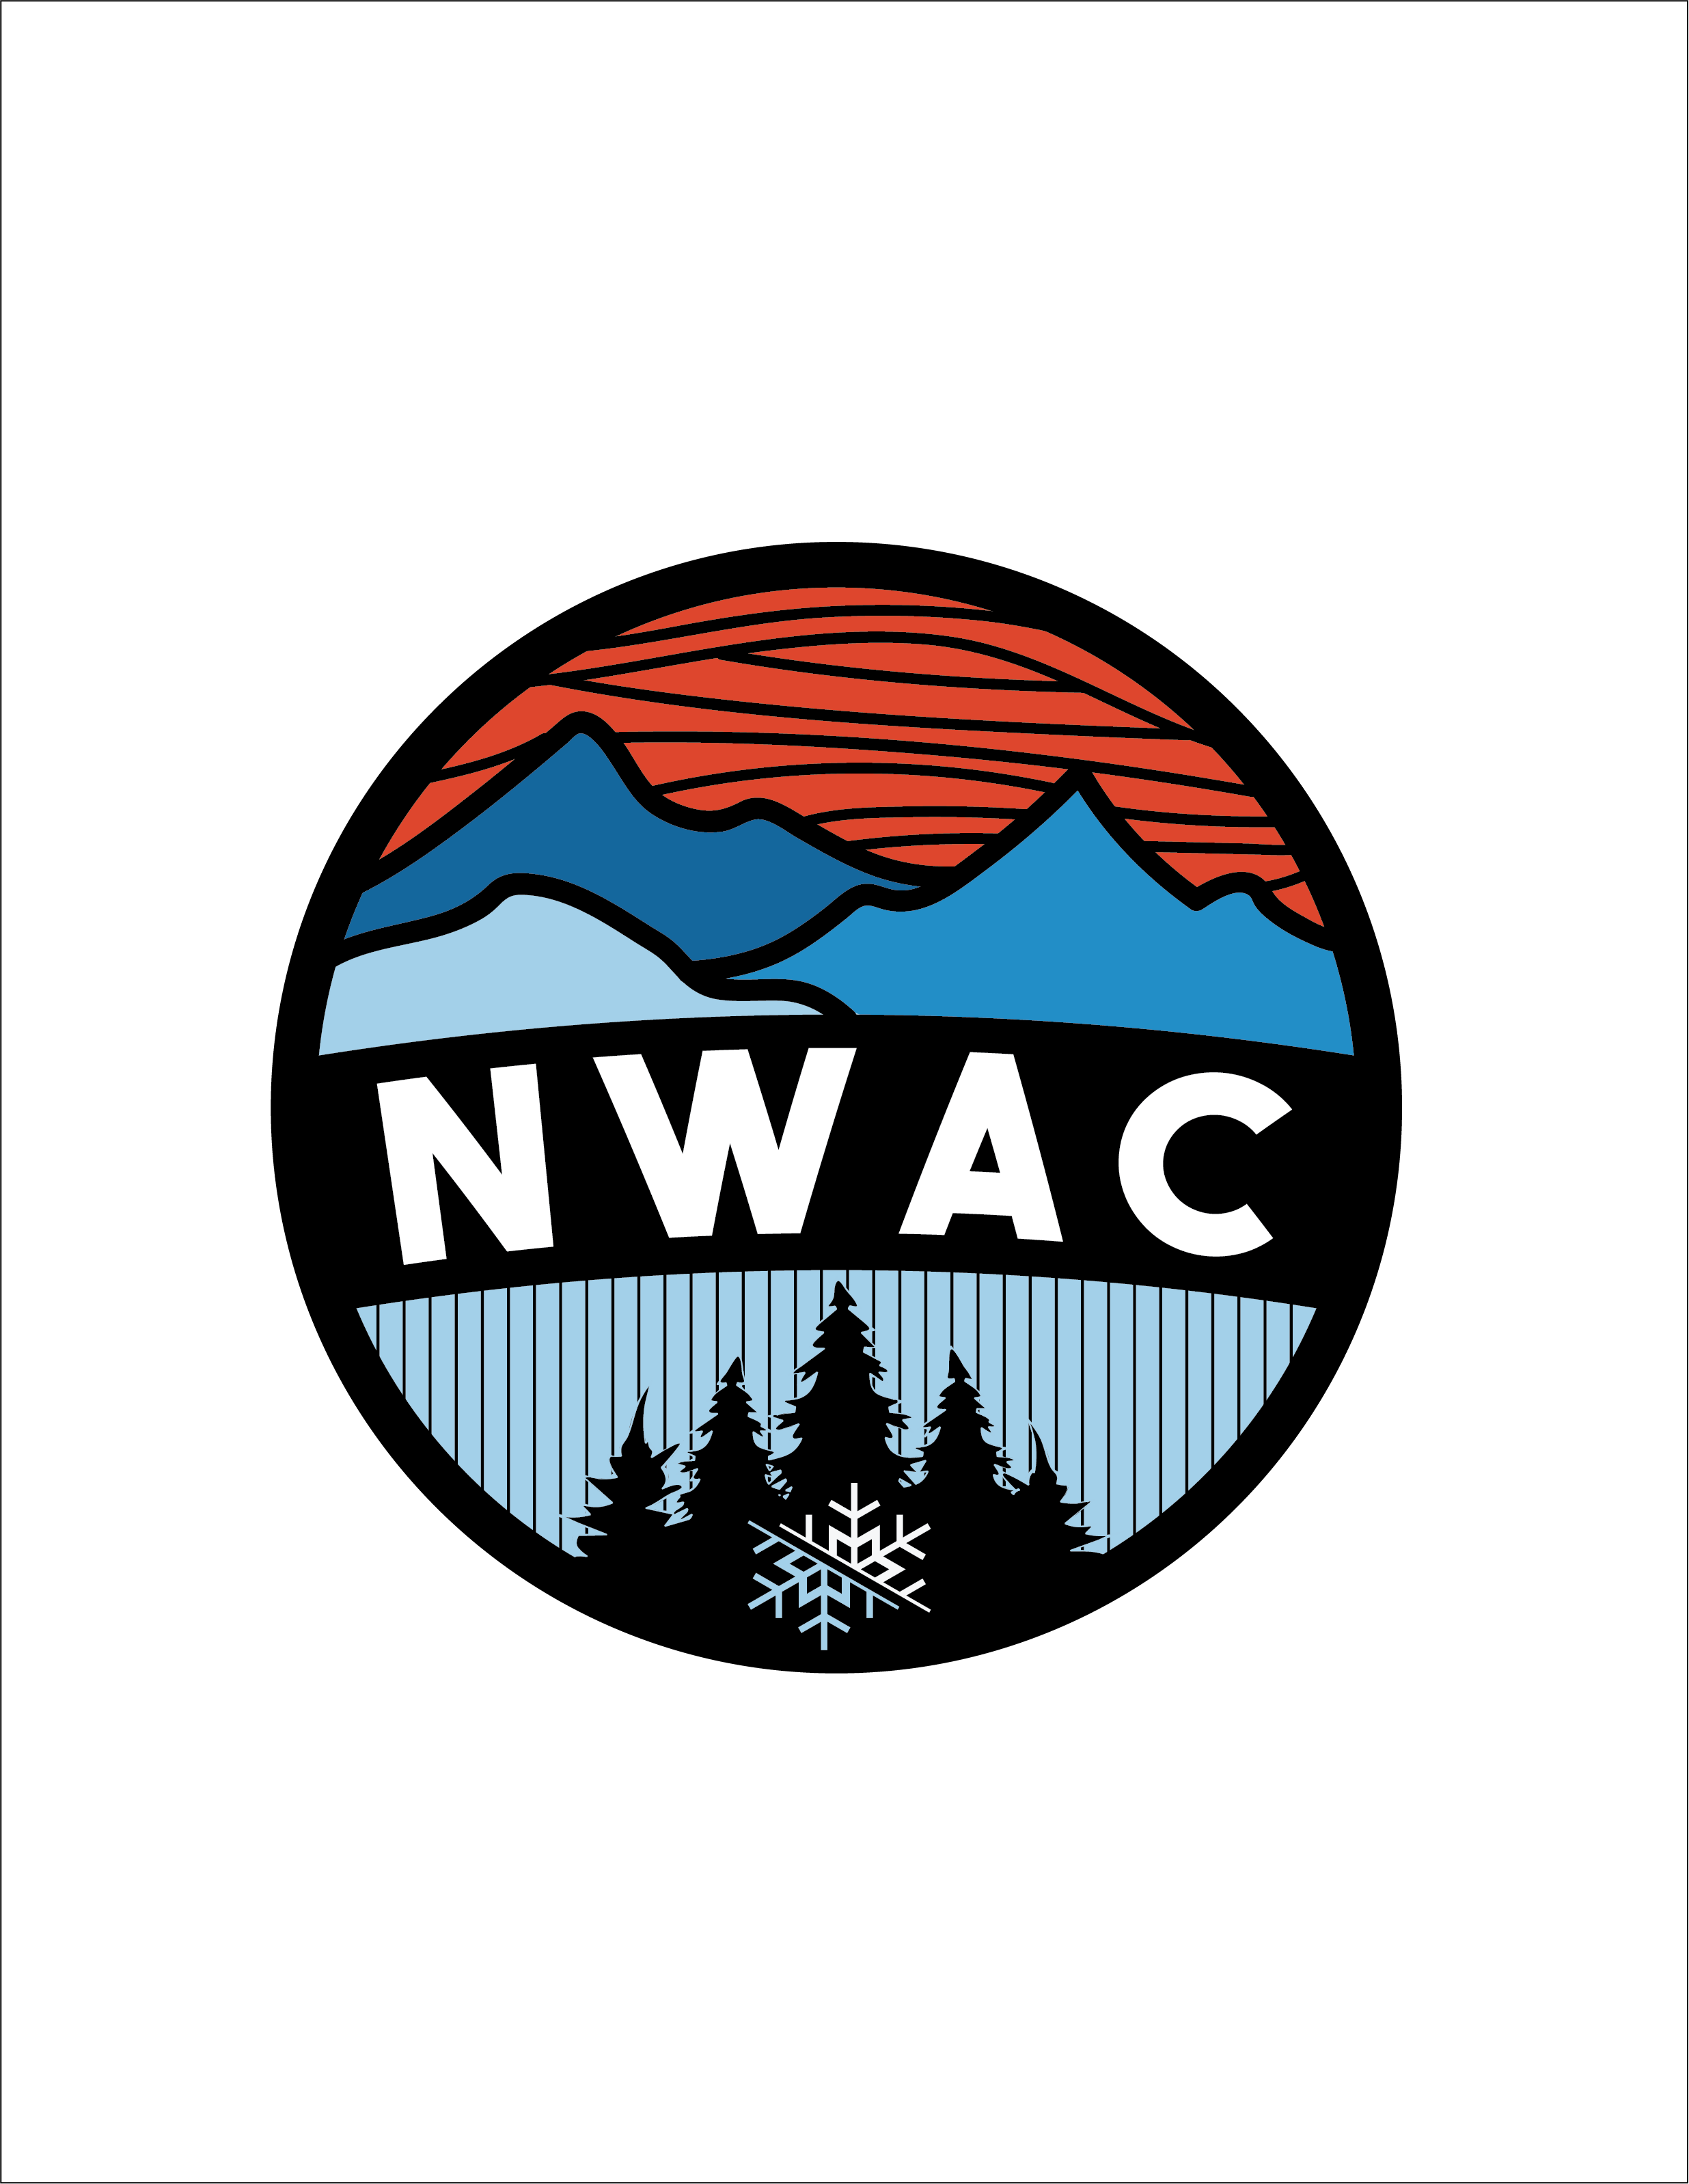 NWAC 2018 Embroidered Patch